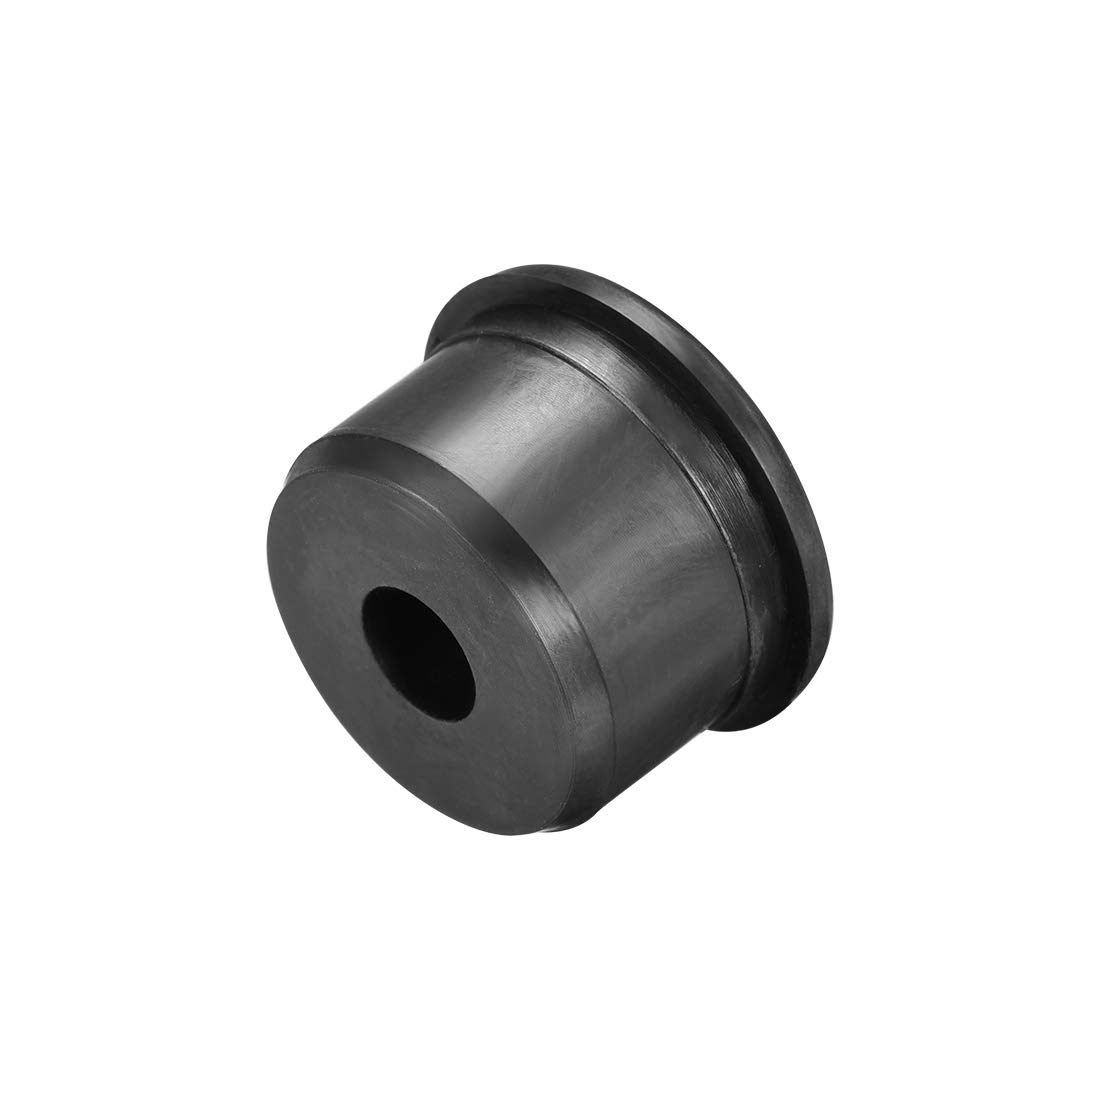 5pcs SPR-070 EPDM 7mm Dia Seal Hole Insert Stopper Black for Cable Gland uxcell Rubber Stopper